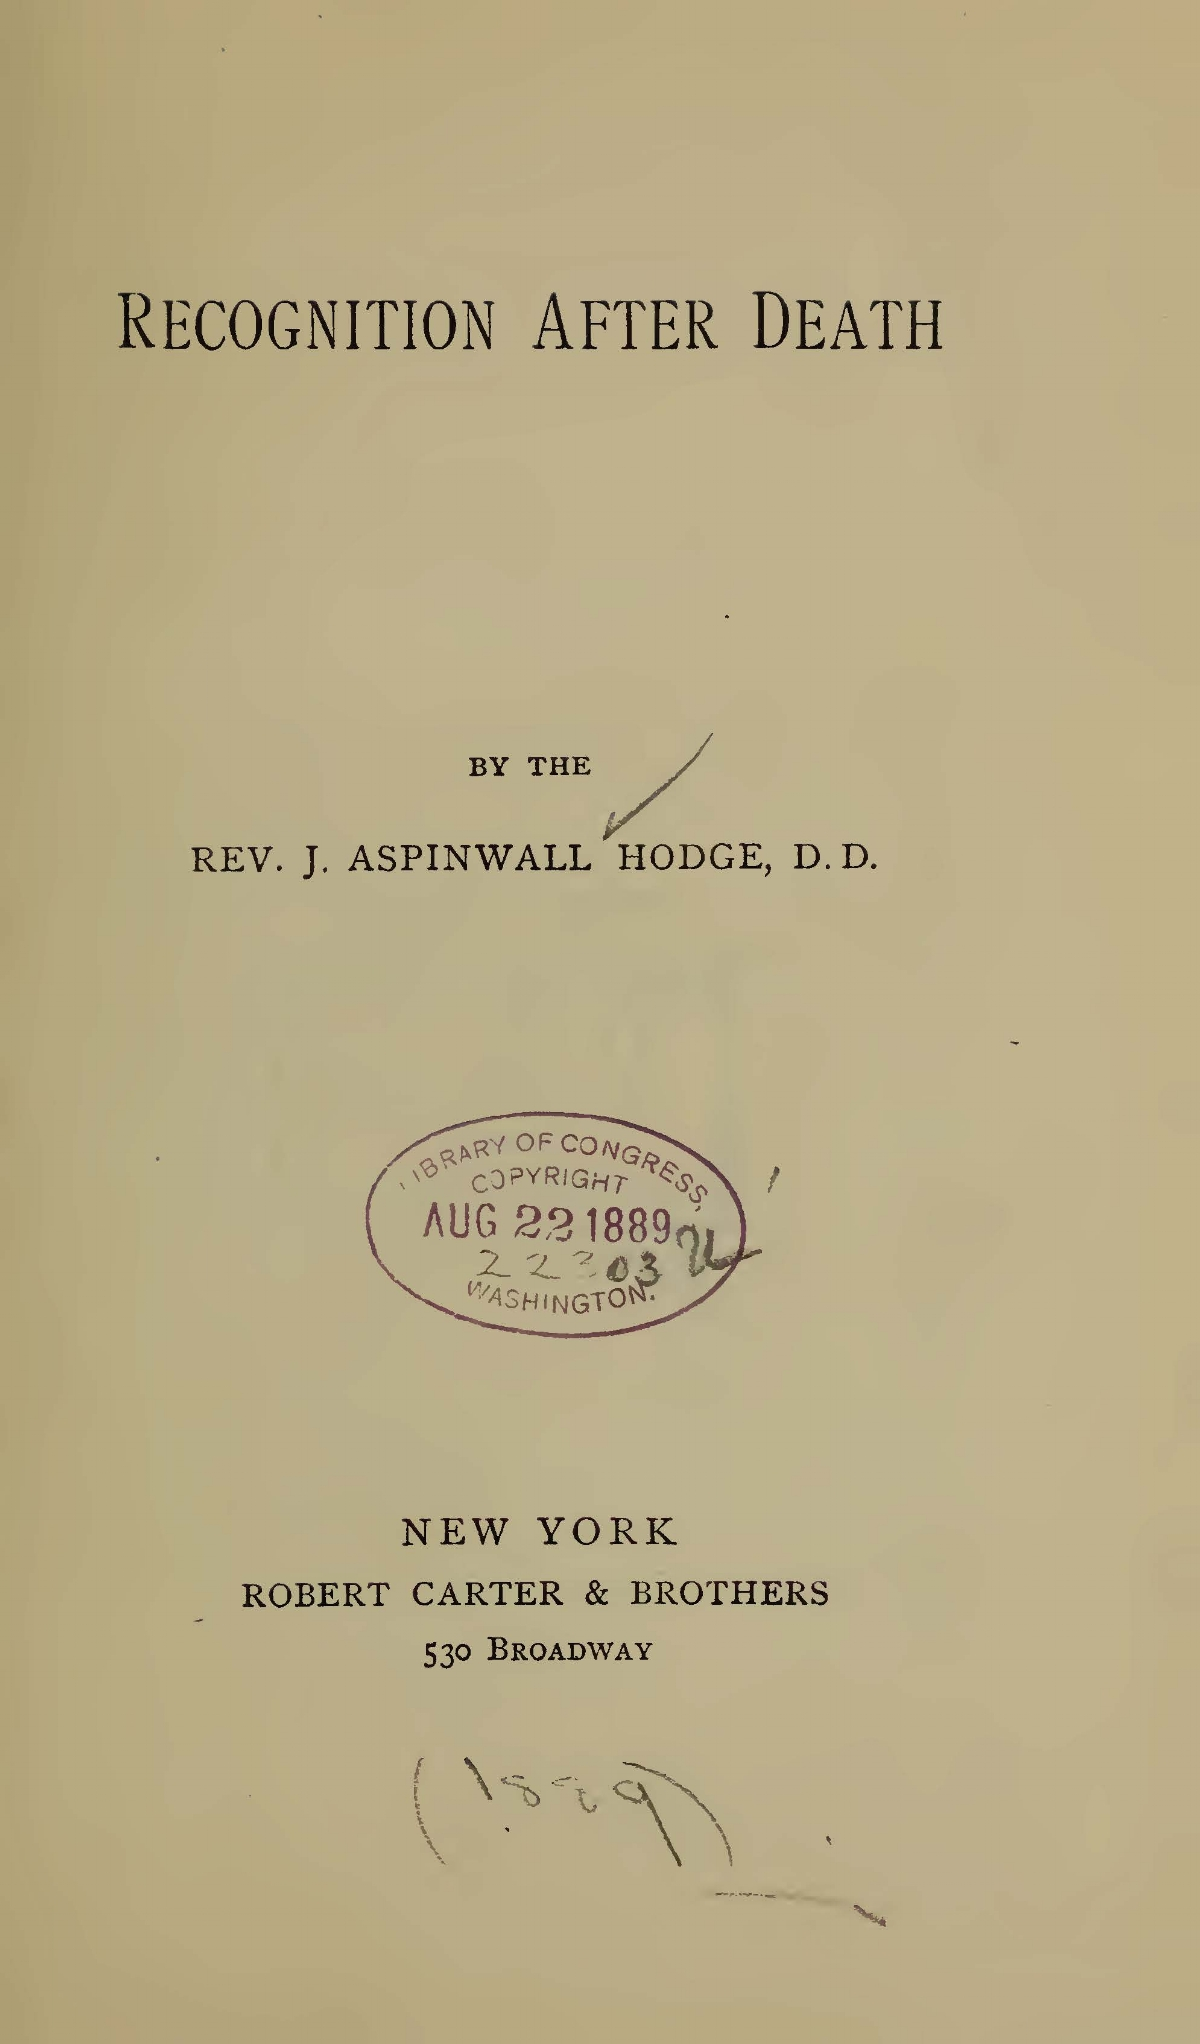 Hodge, John Aspinwall, Recognition After Death Title Page.jpg